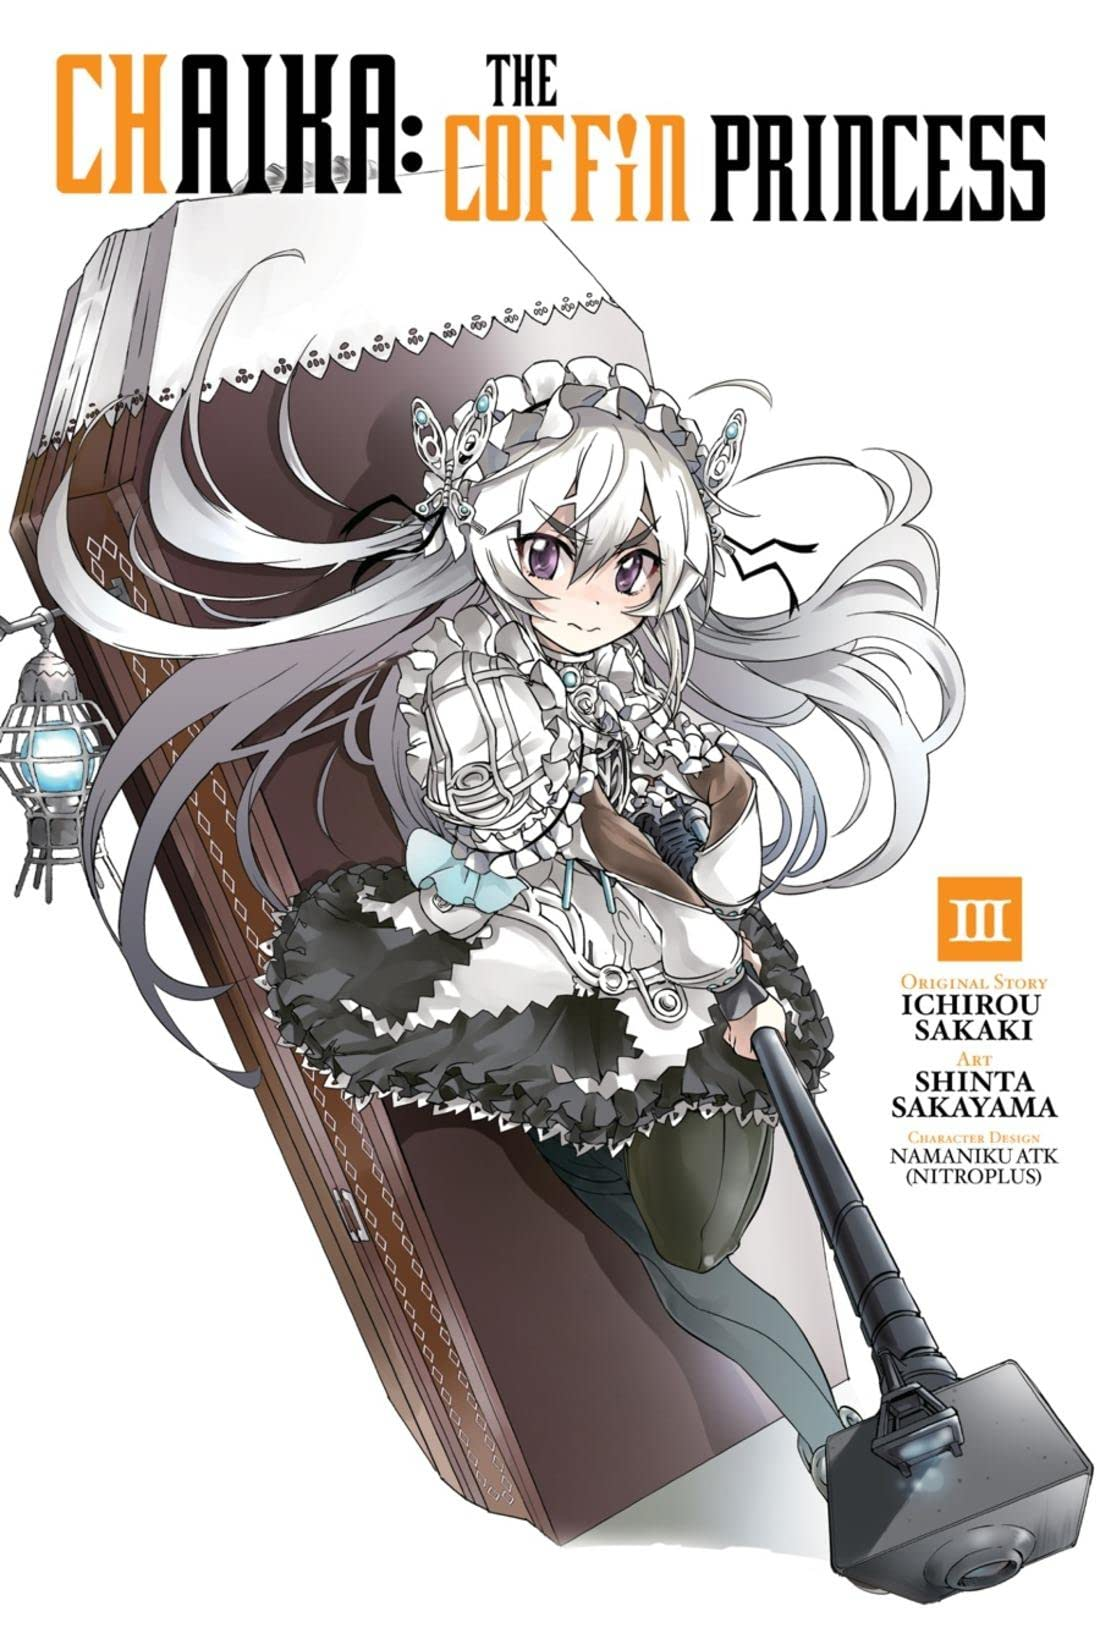 Chaika: The Coffin Princess Vol. 3